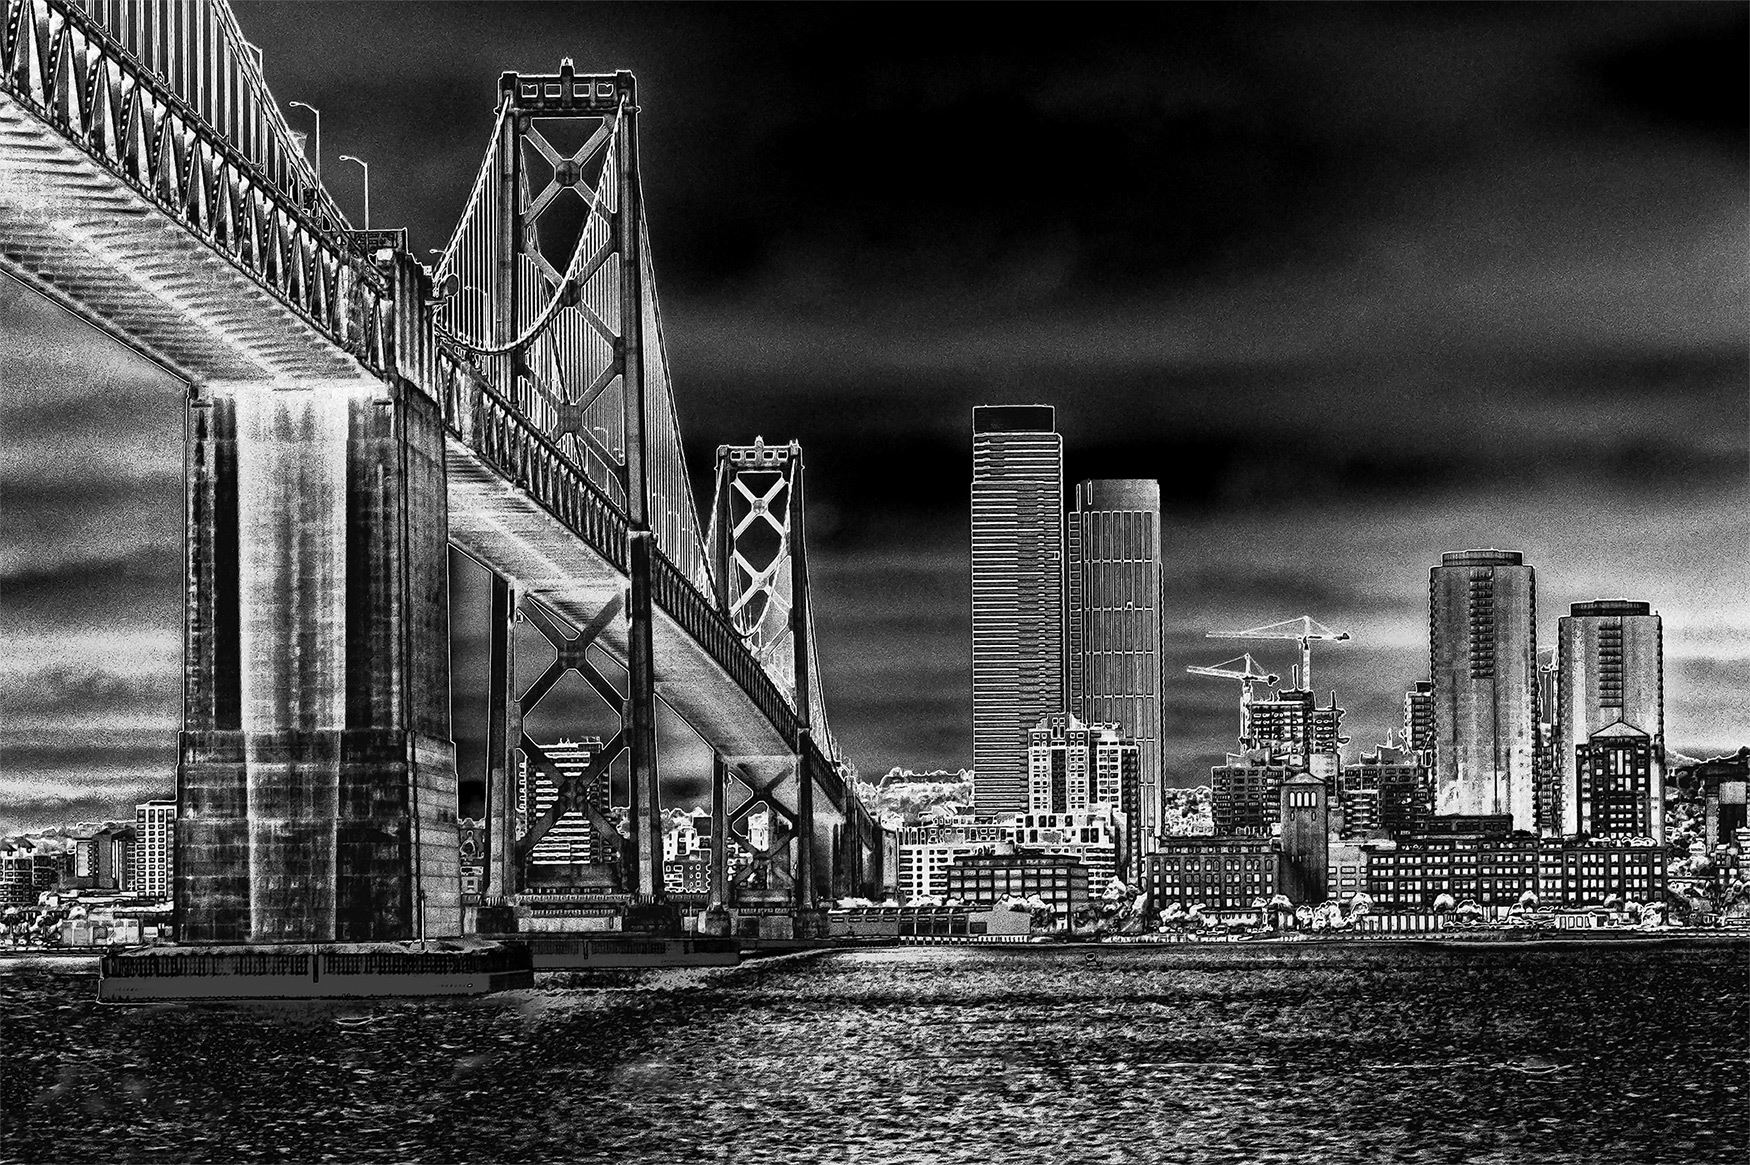 This is an image of San Francisco from the Ferry Building